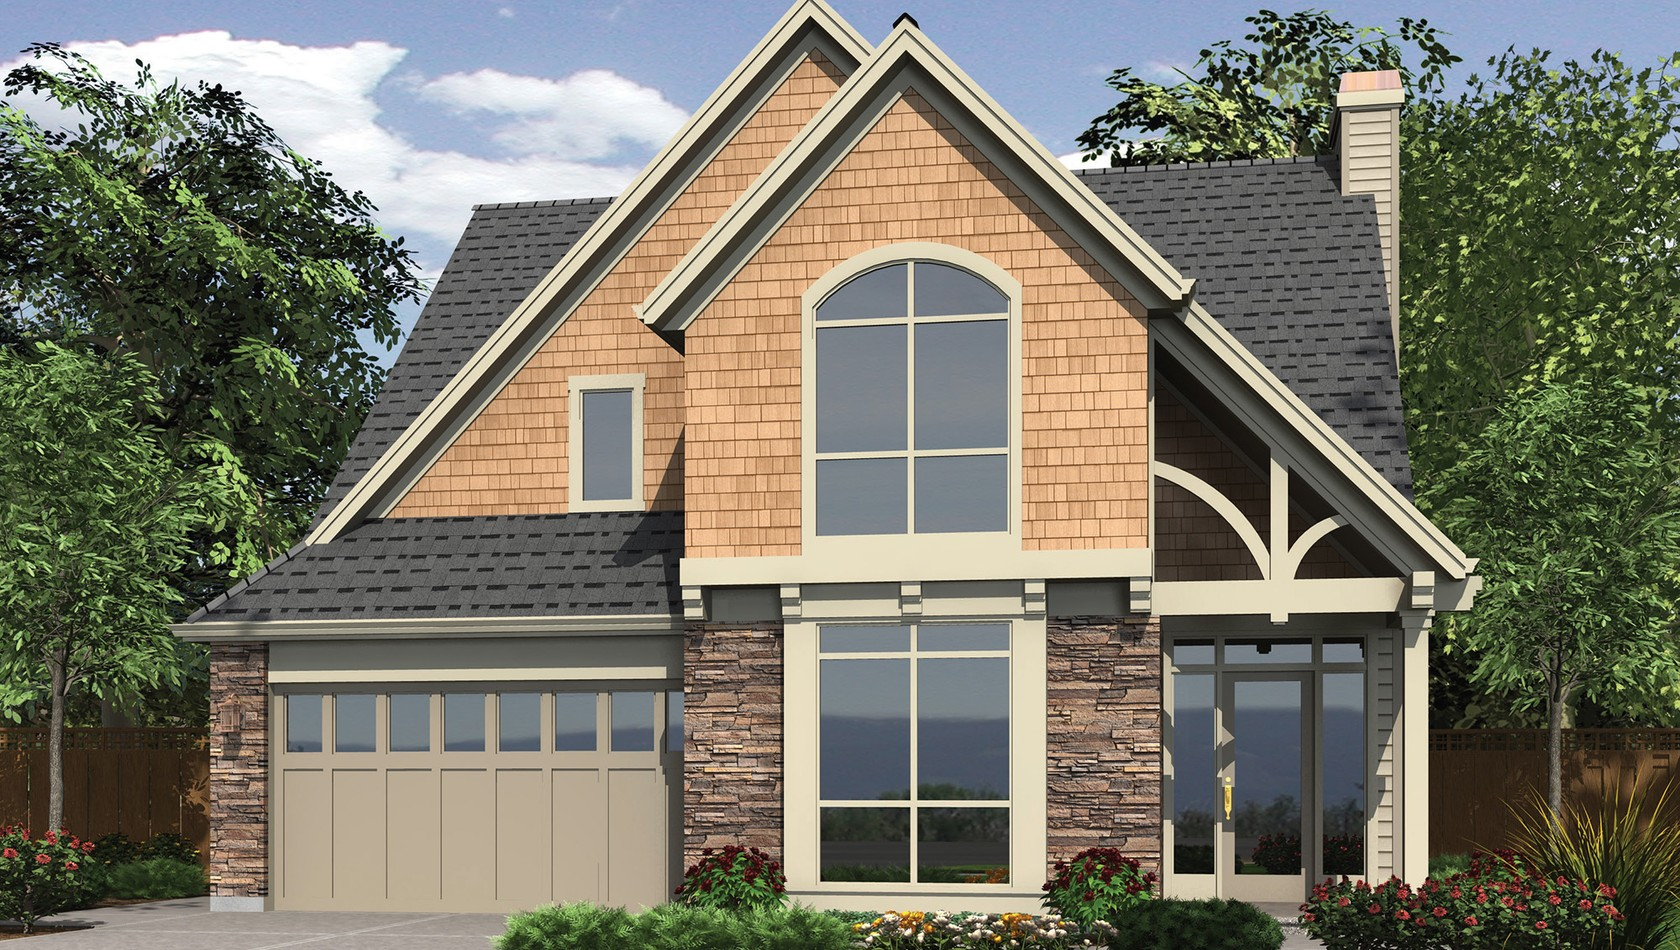 Main image for house plan B2388: The Sibley